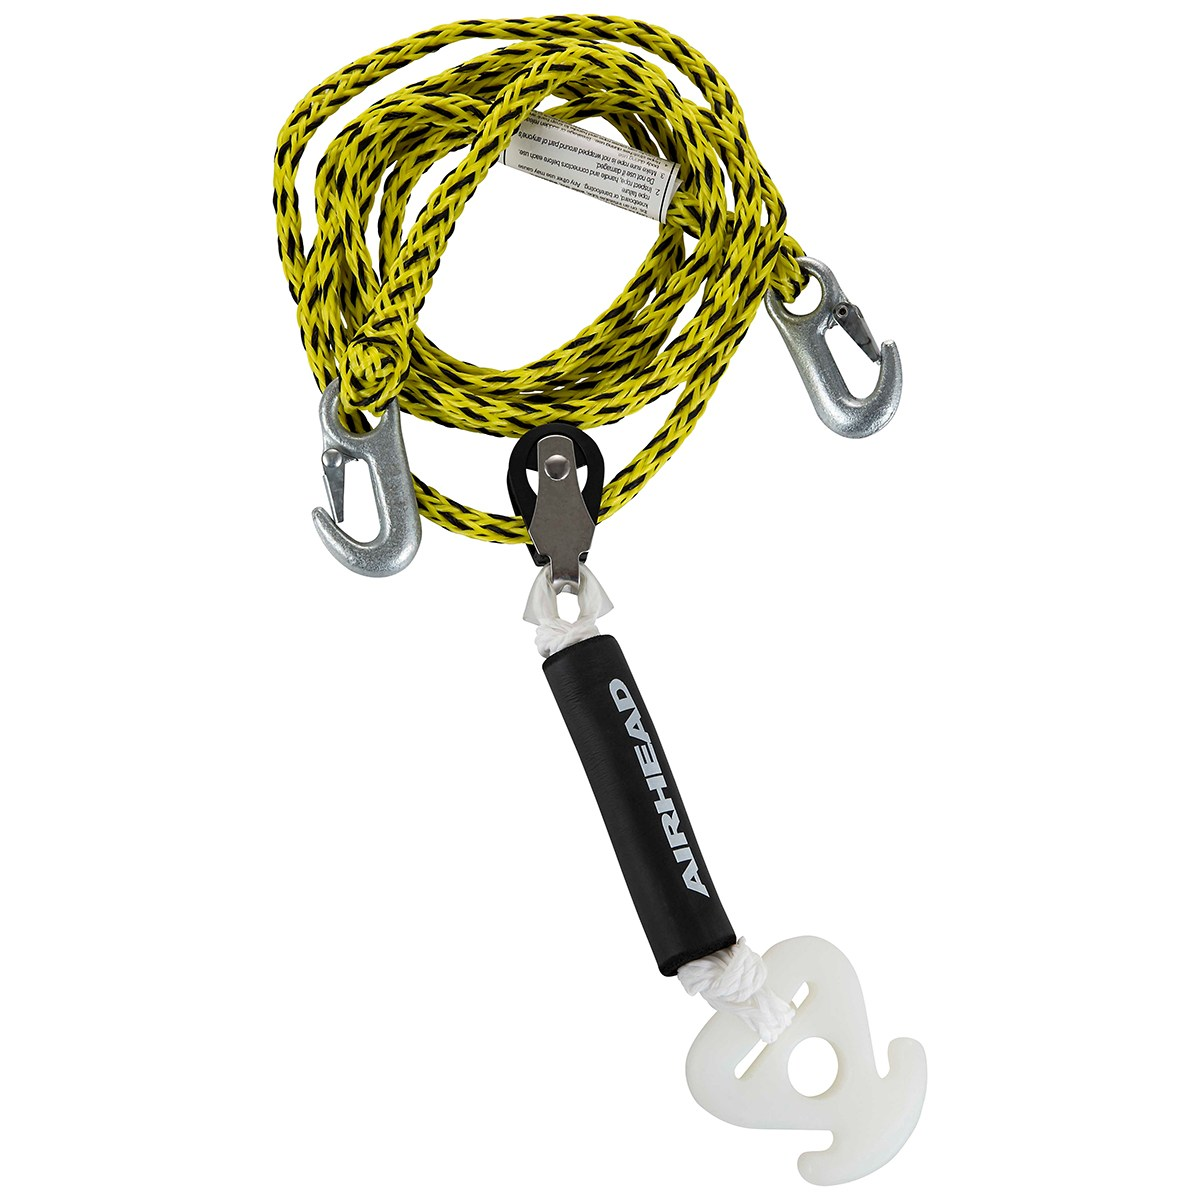 Product Details Boat Tow Harness Airhead Loading Zoom